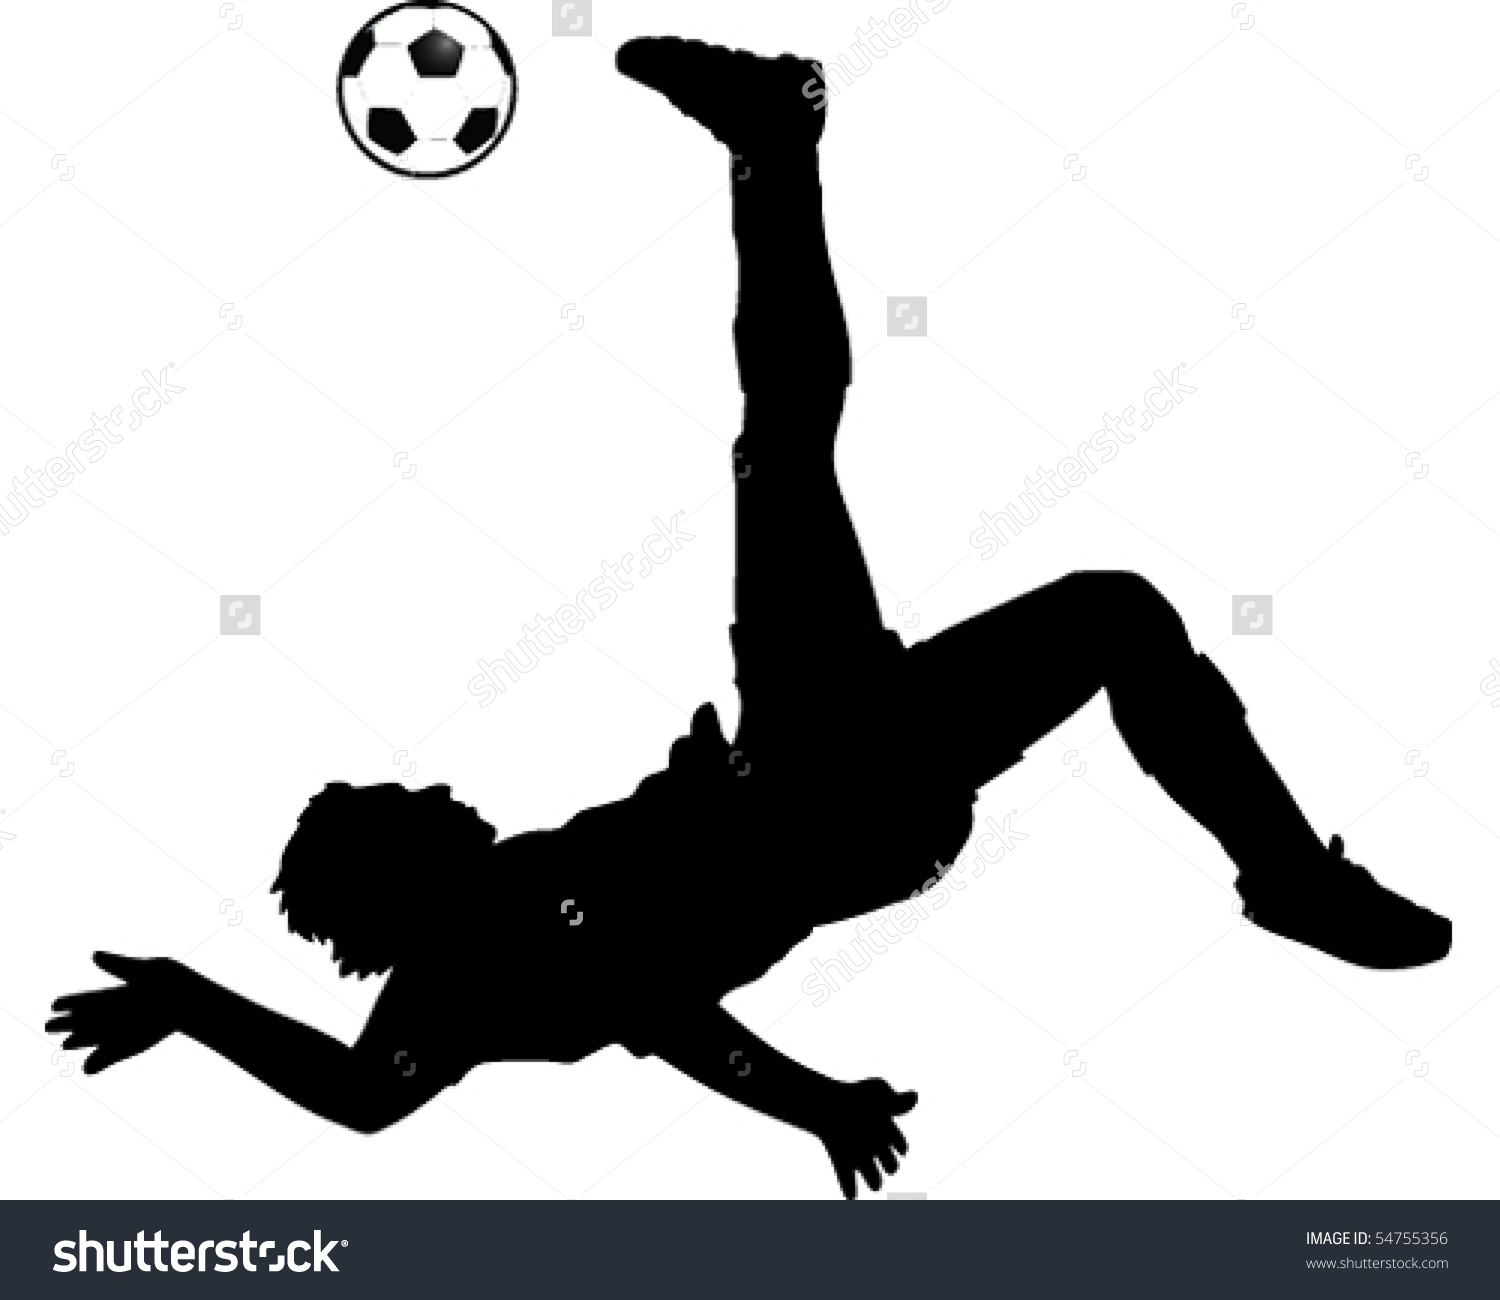 Football Kick Bicycle Kick Stock Vector 54755356.